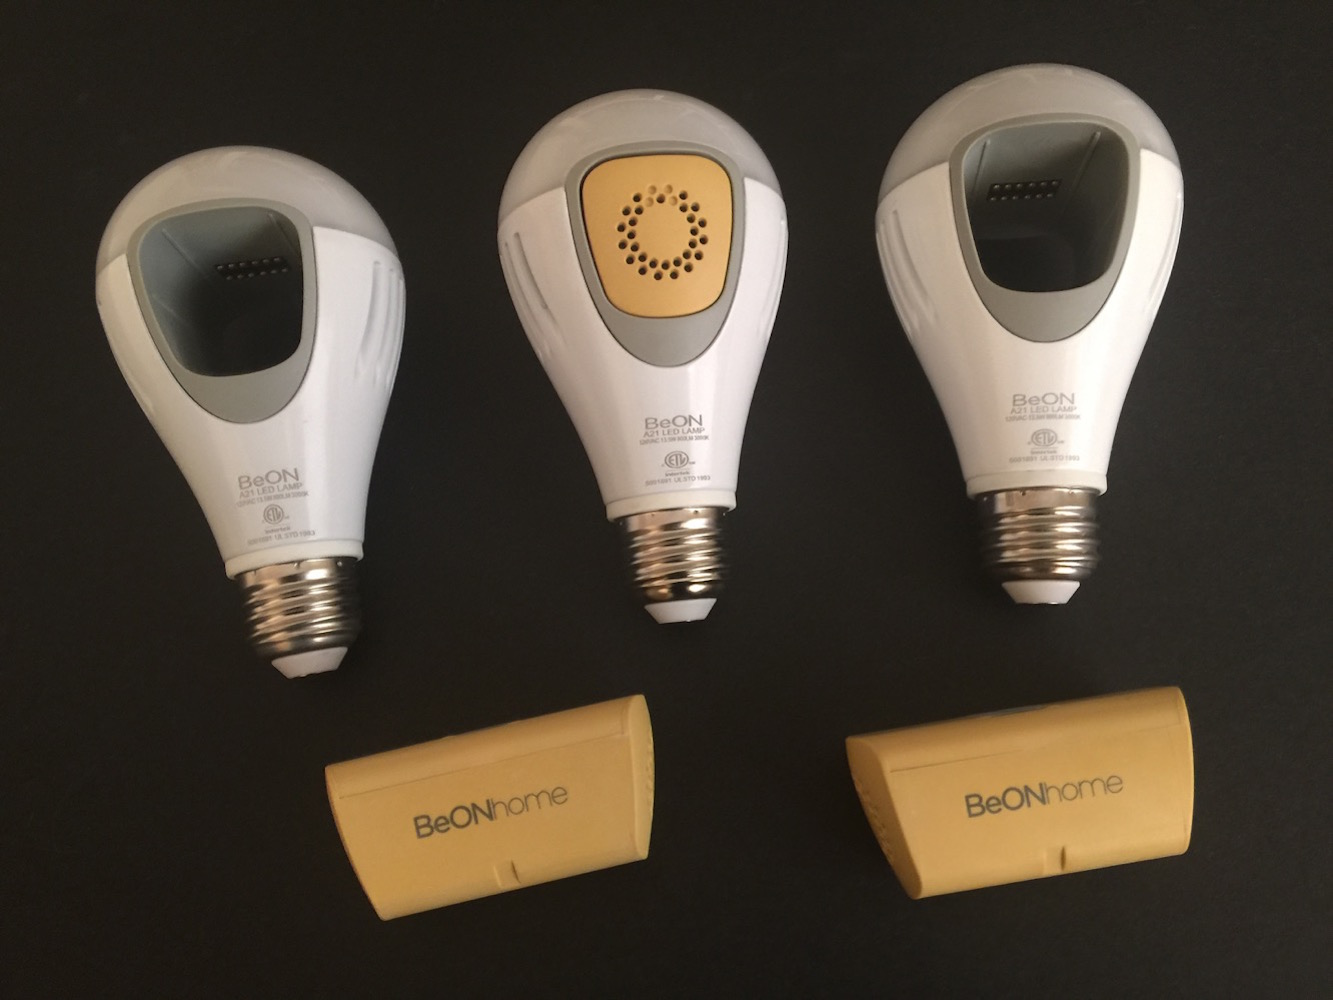 beon-home-security-lighting-for-your-smart-home